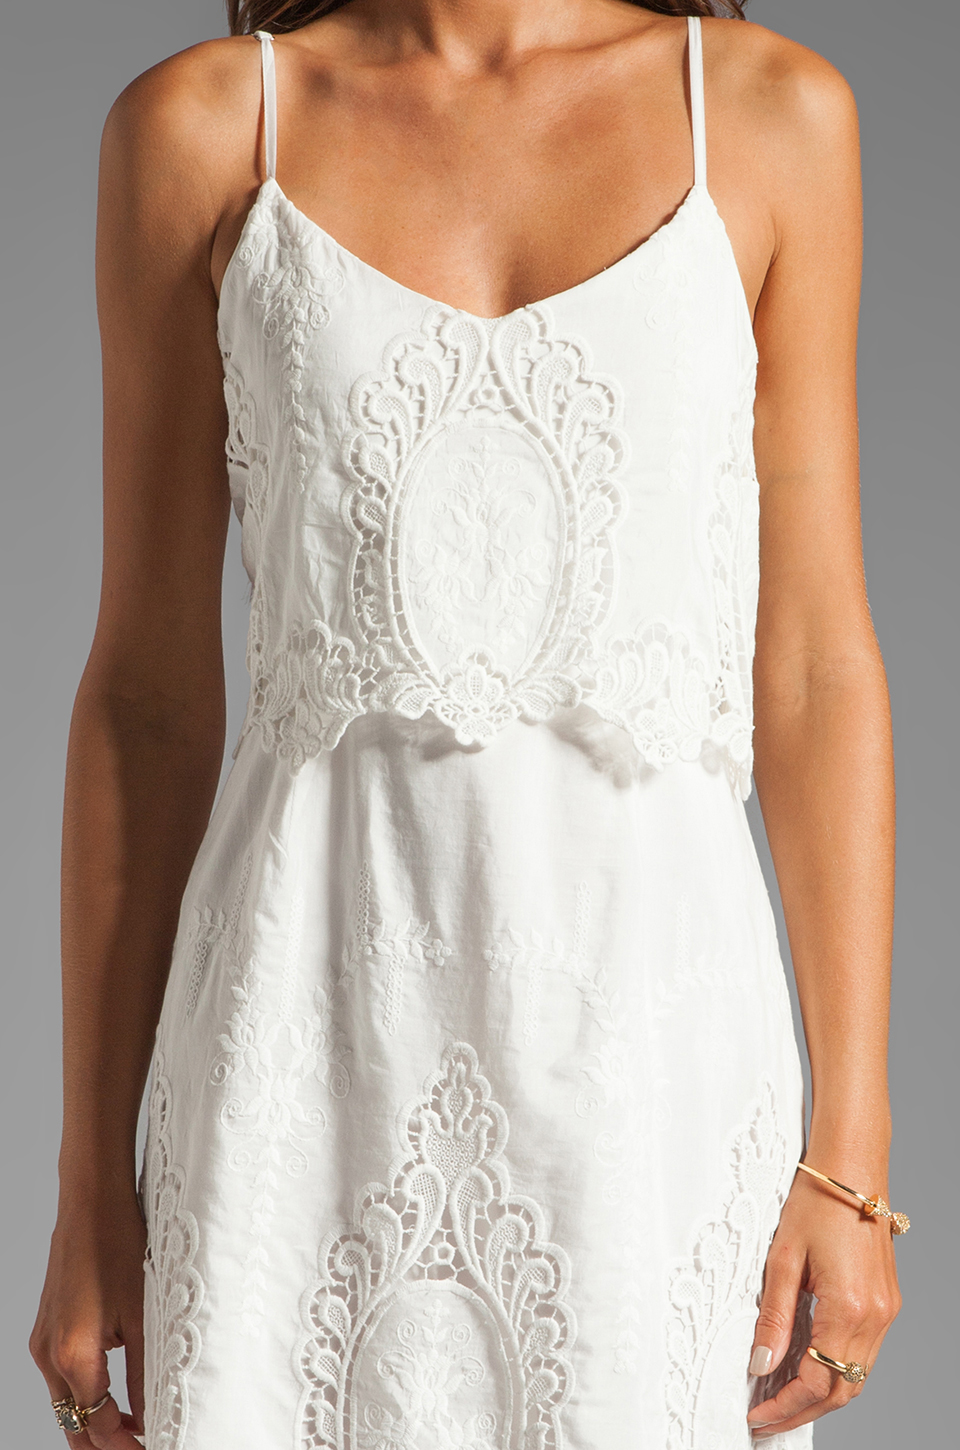 Dolce Vita Jeralyn Dress in White